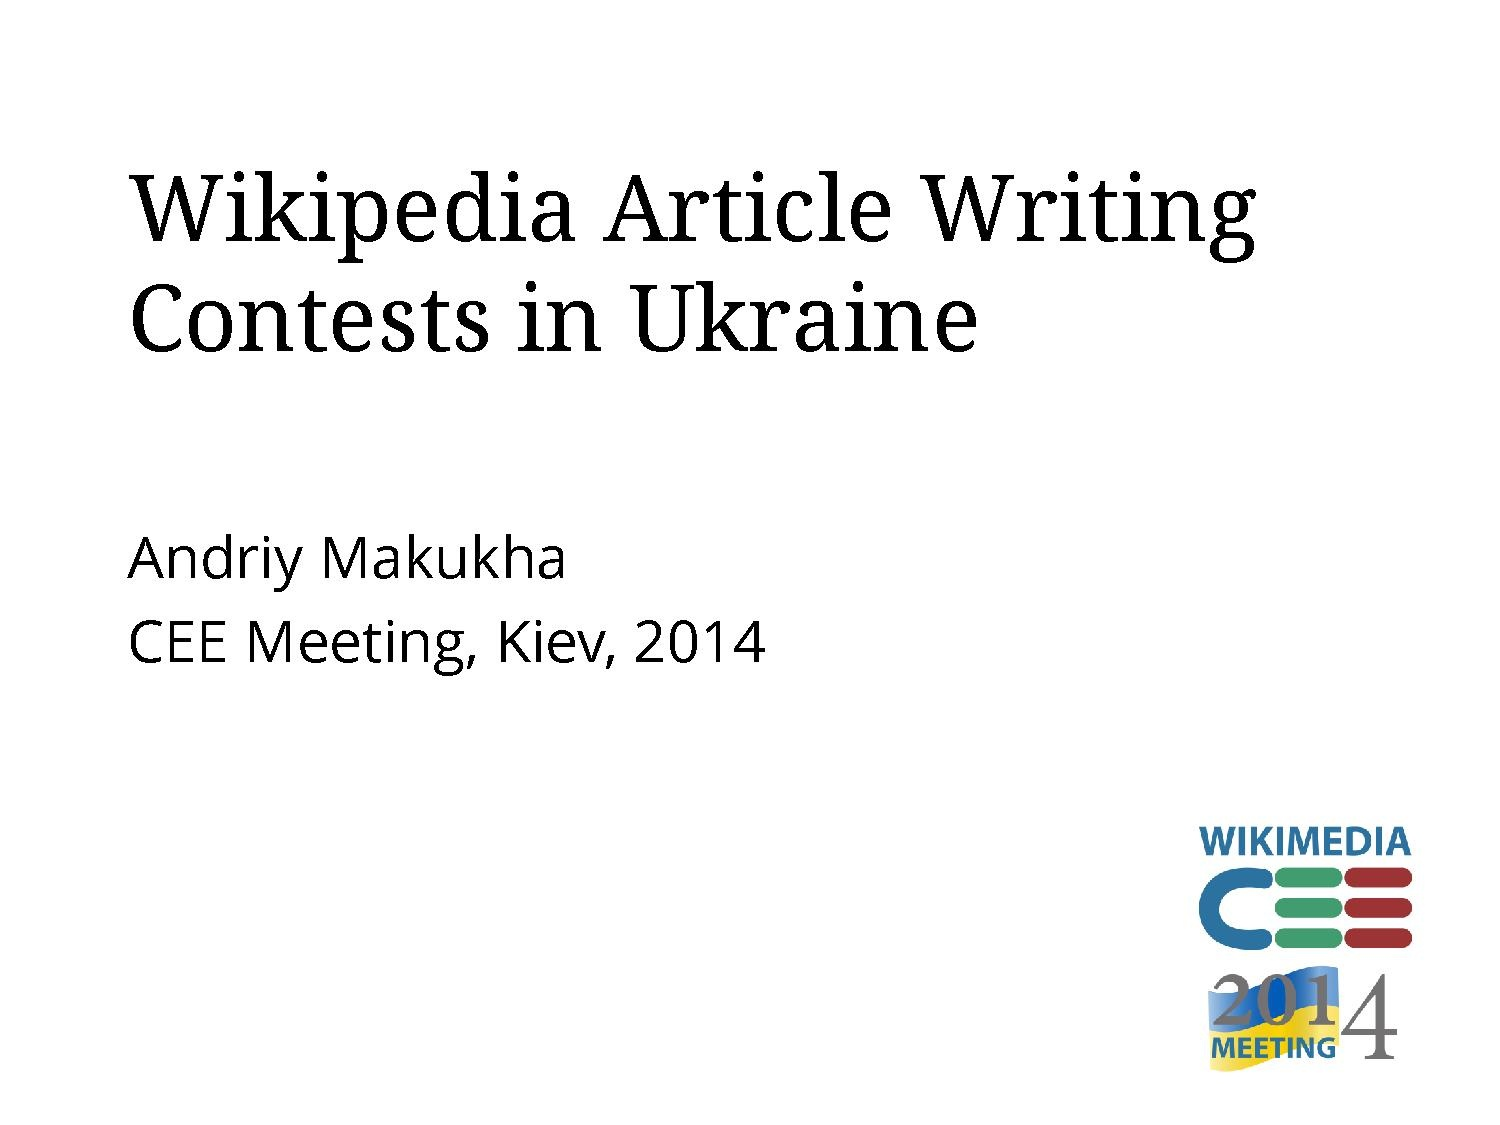 writing competitions 2014